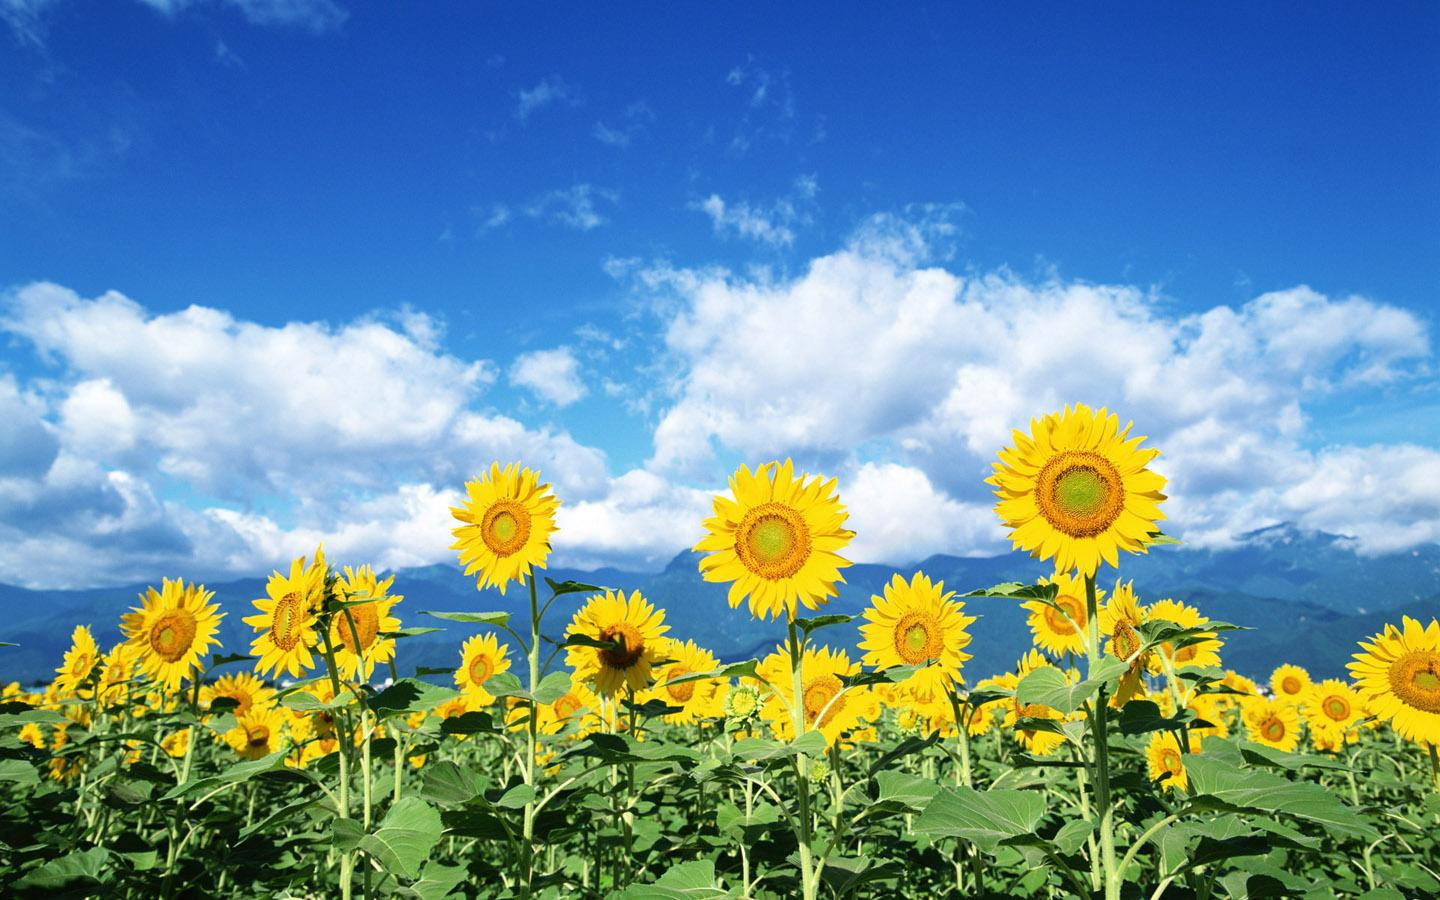 Sunflowers will clean up radiation leaked from power plant Cali 1440x900